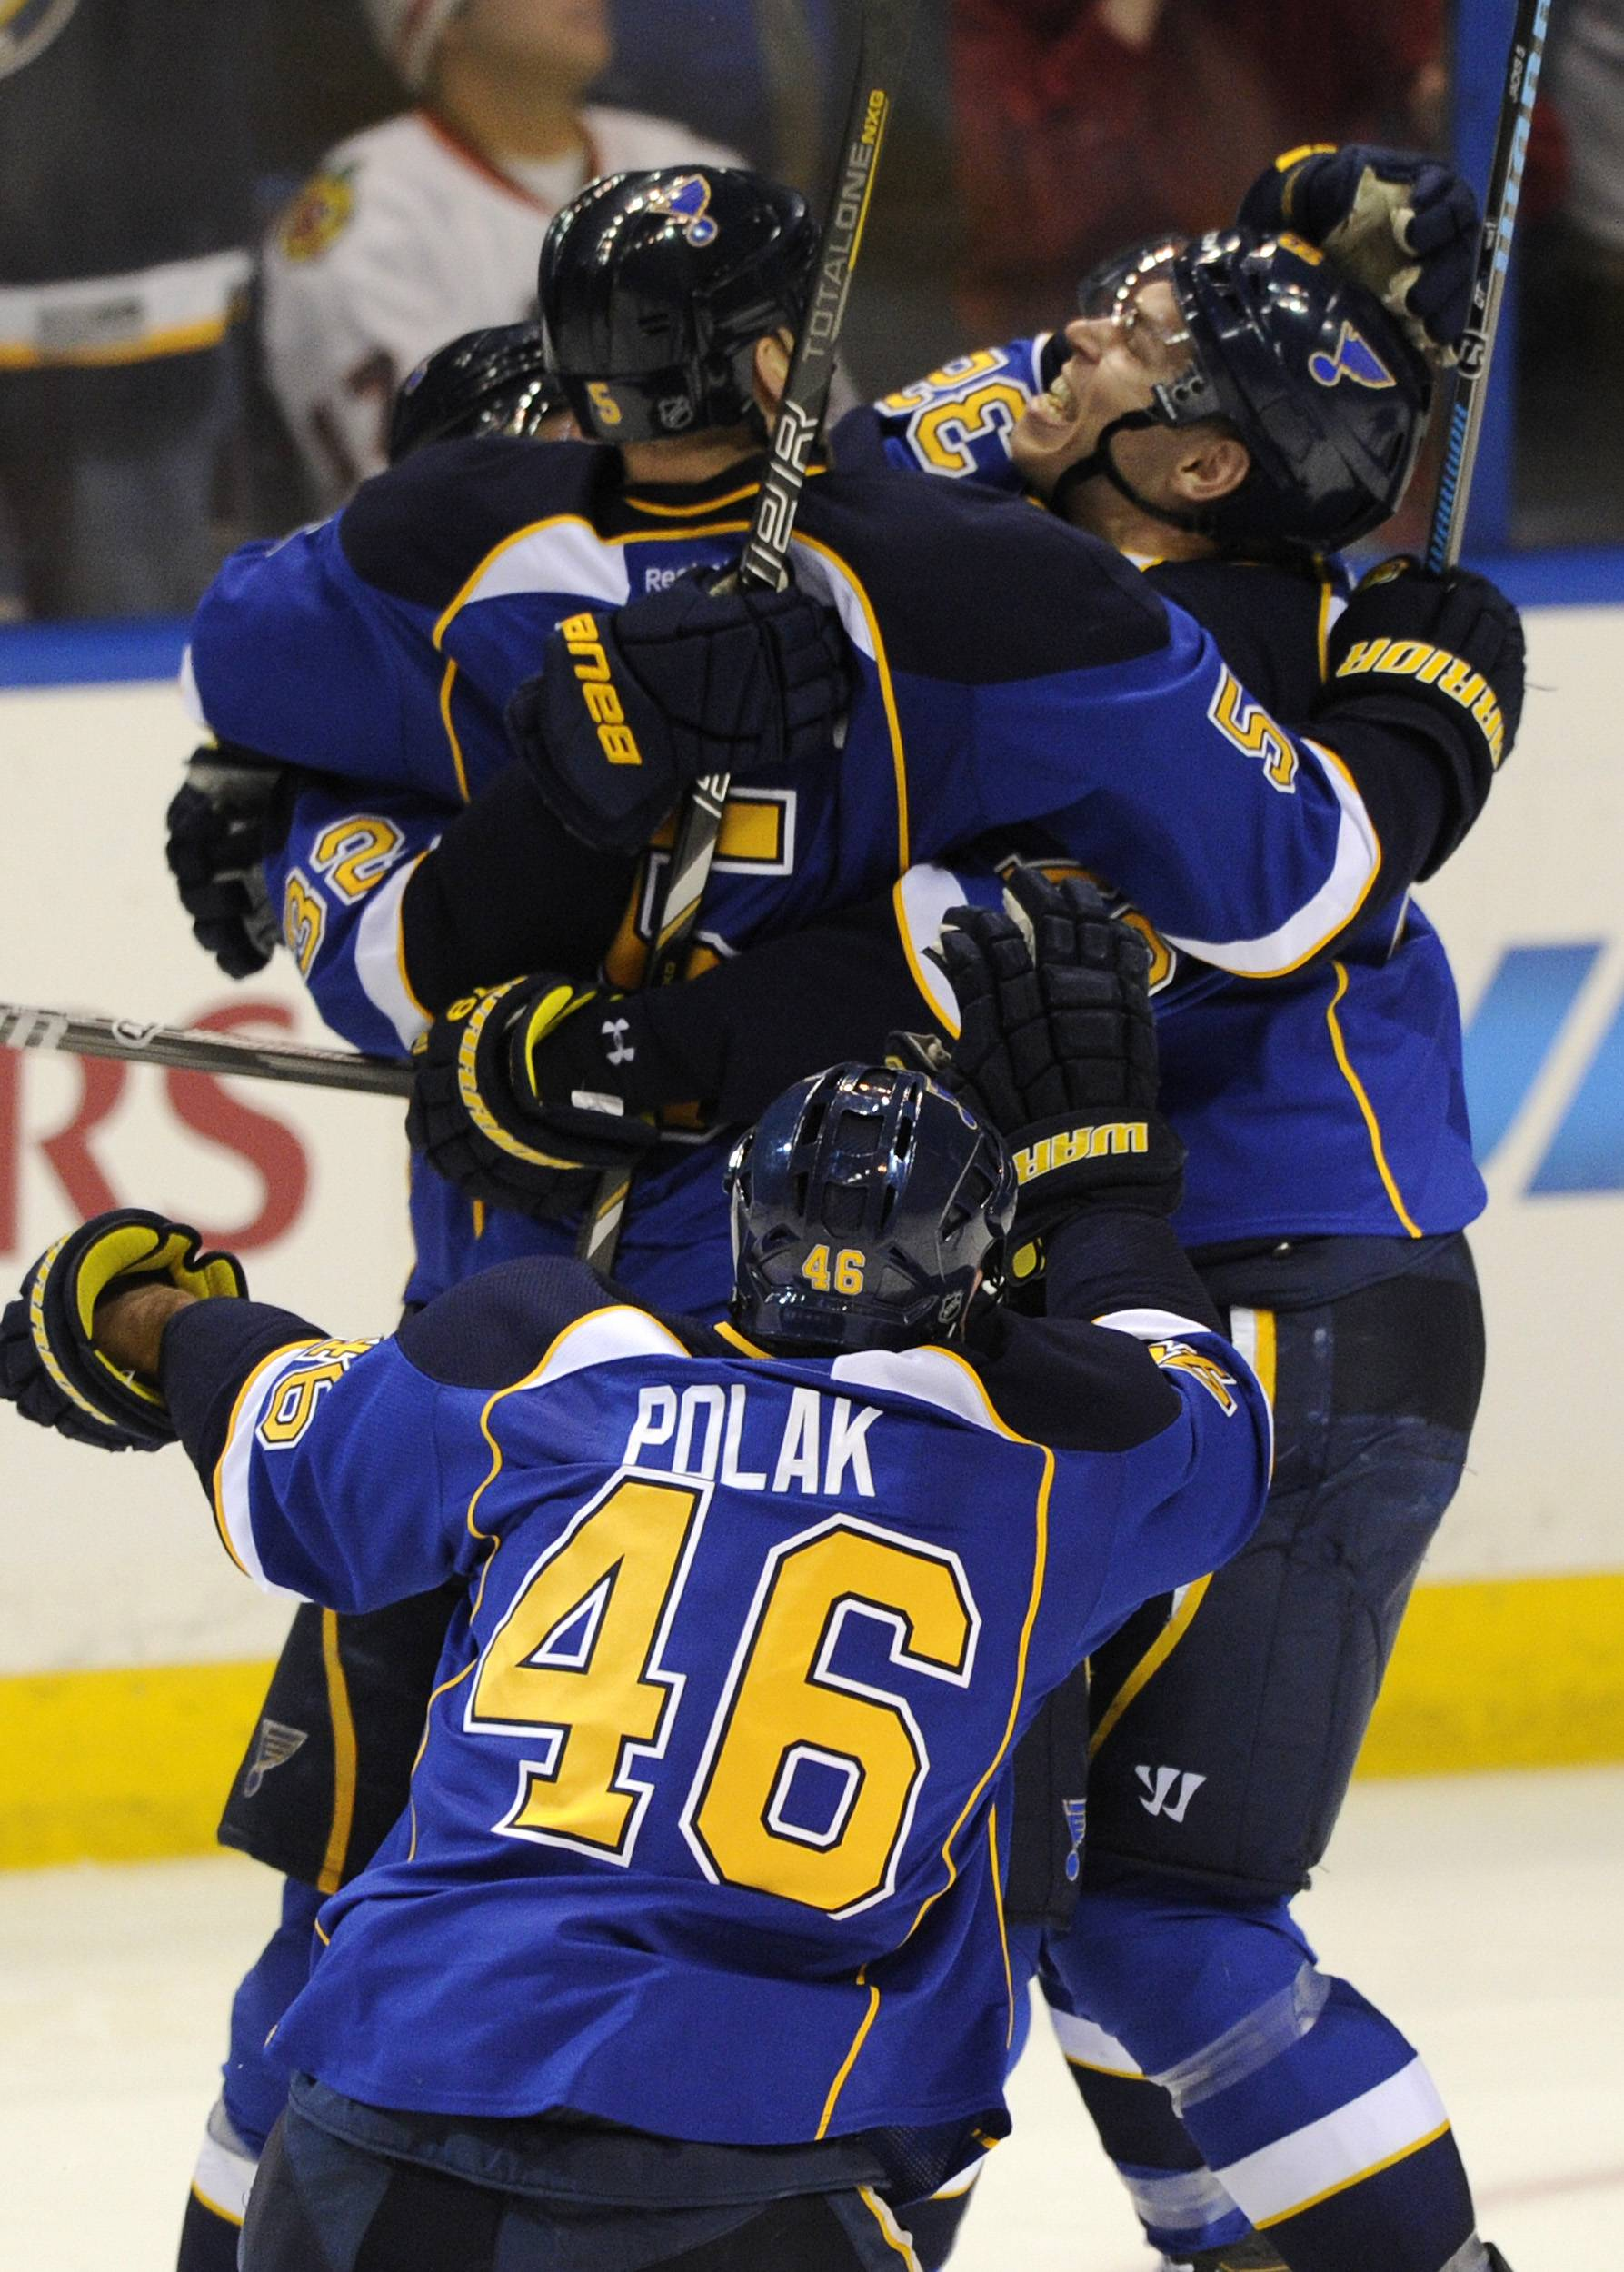 St. Louis Blues' Barret Jackman (5) is congratulated by teammates Adam Cracknell, right, and Roman Polak (46), of the Czech Republic, after his game-winning goal against the Chicago Blackhawks during overtime in Game 2 of a first-round NHL hockey playoff series, Saturday, April 19, 2014, in St. Louis.